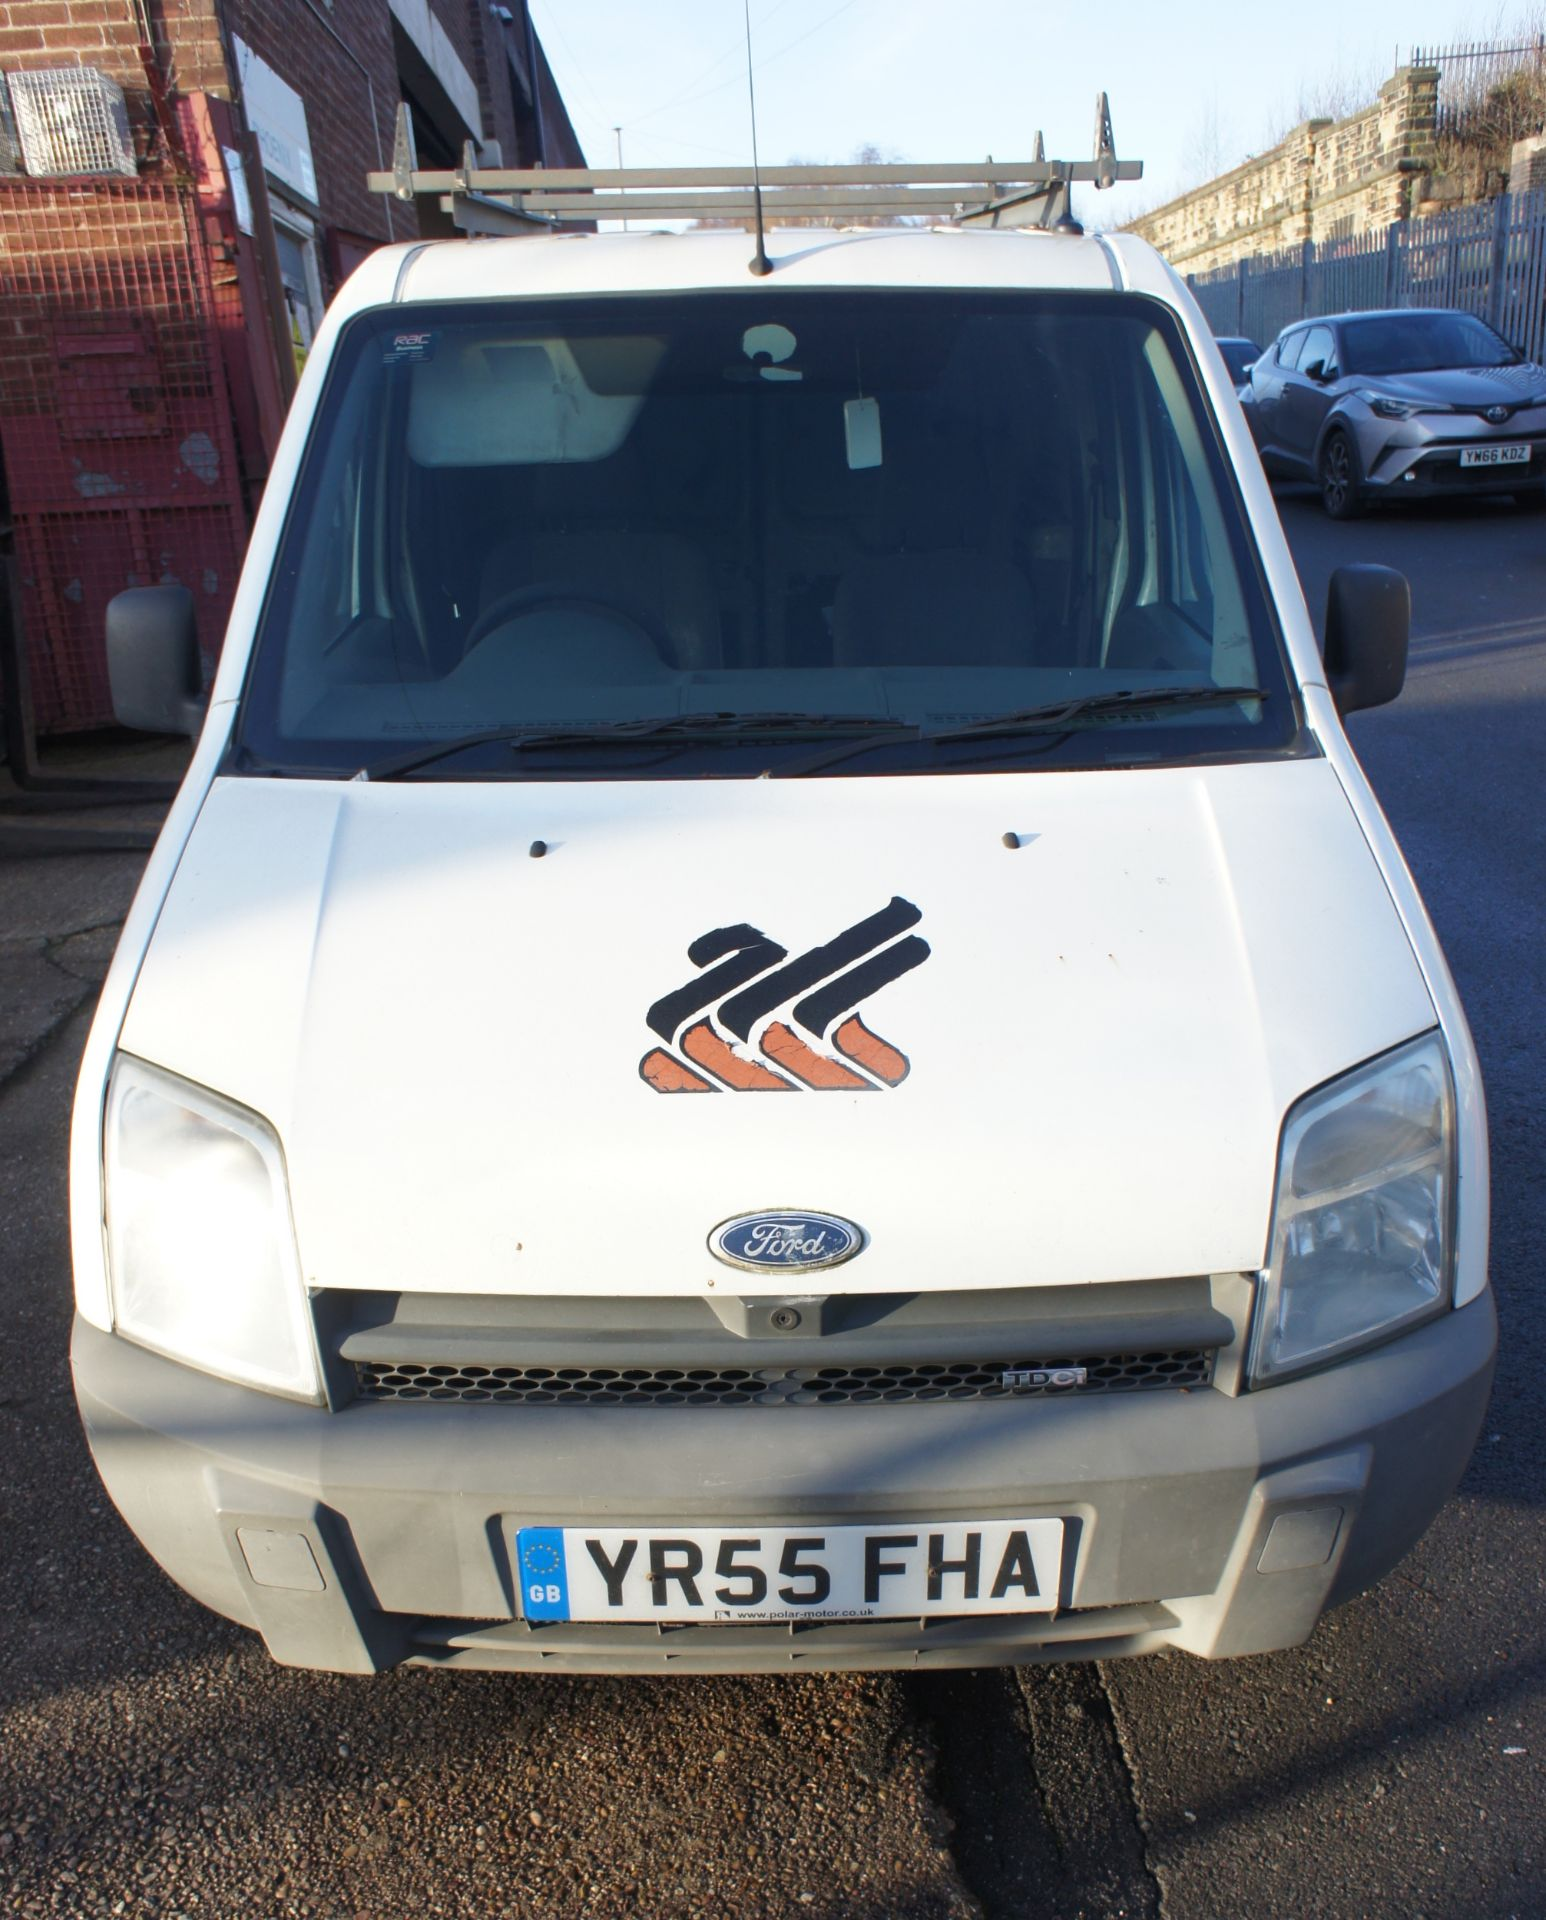 Ford Transit Connect 200 SWB low roof Van, diesel, - Image 2 of 10